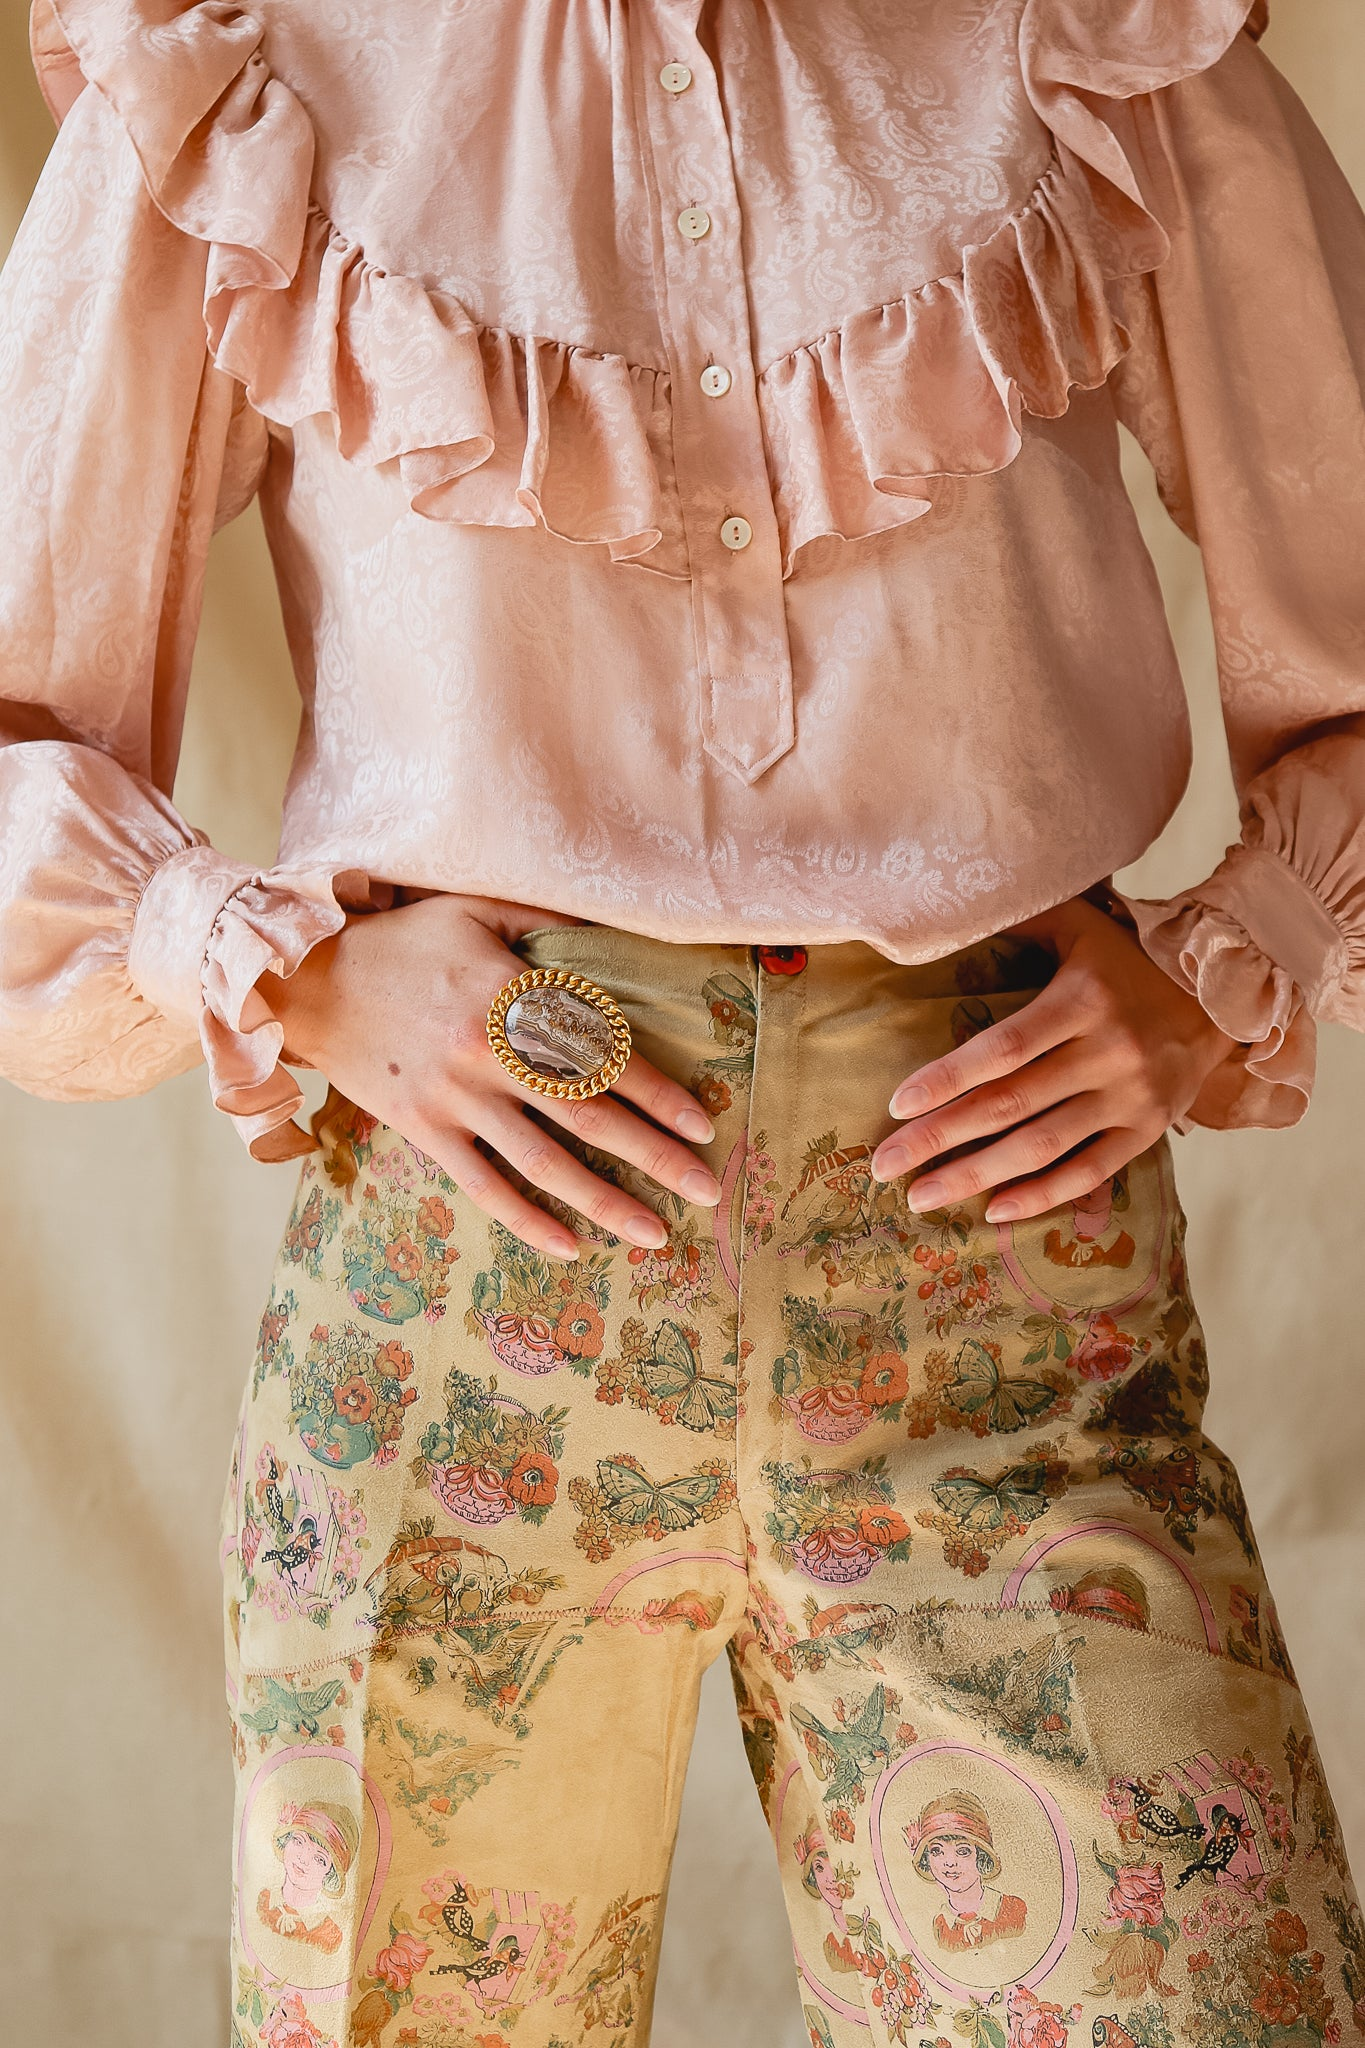 Recess Vintage Consignment torso waist & rings on  in YSL Blouse & Painted Suede Pants